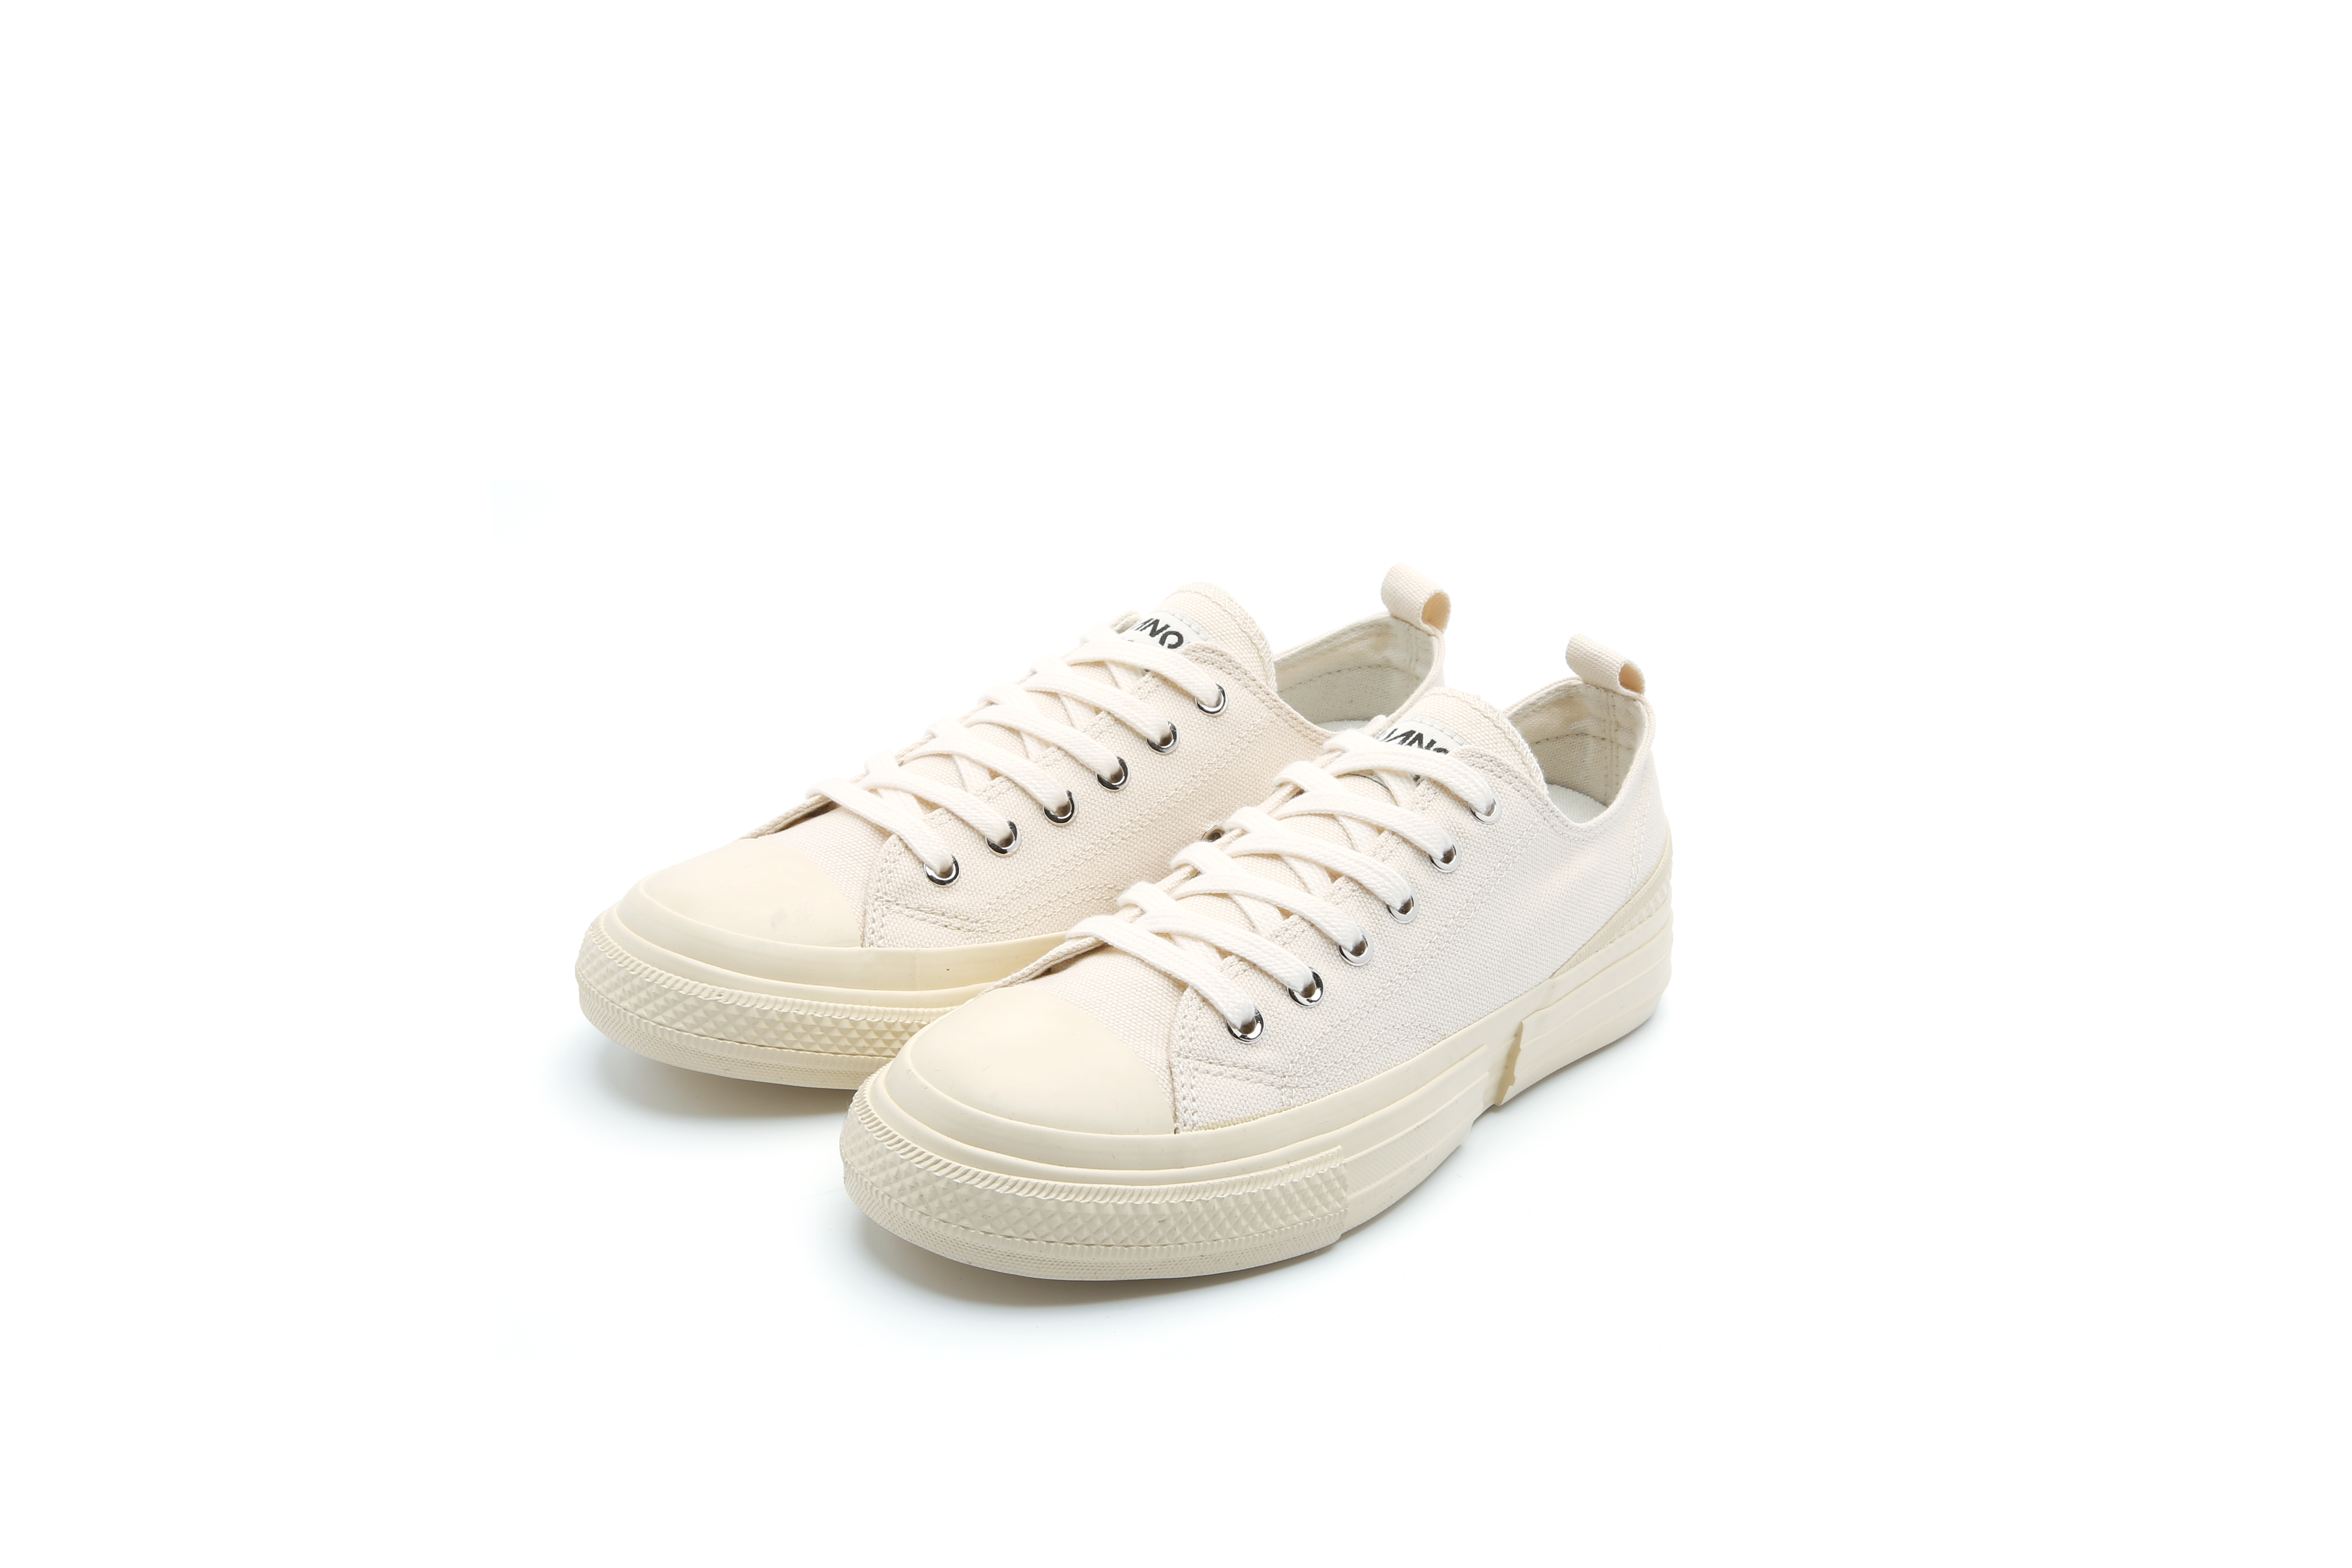 2020 Good Sales Popular High Quality White Ladies Canvas Shoes